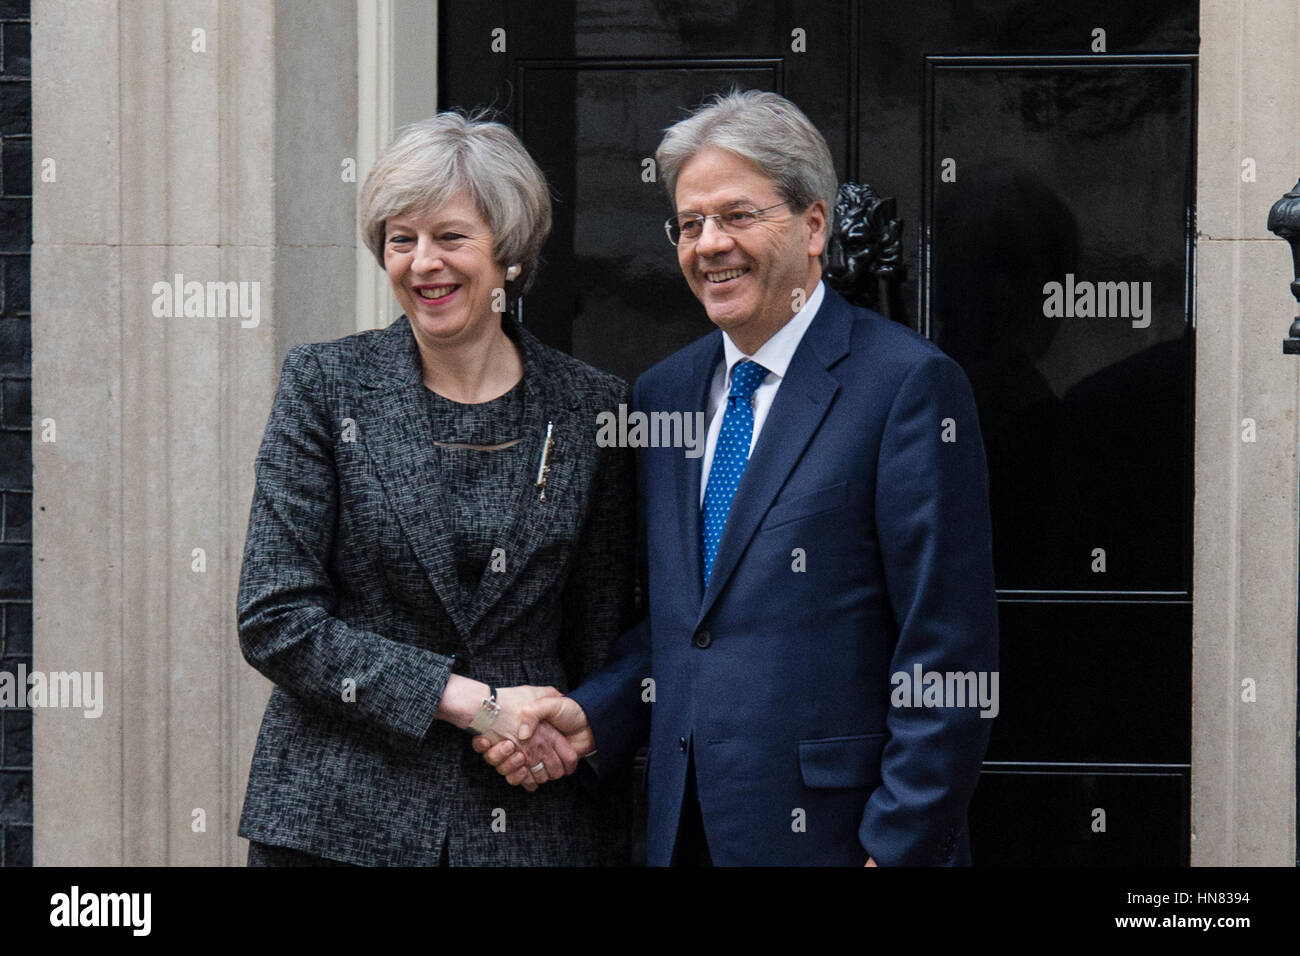 London, UK. 9th February 2017. Prime Minister Theresa May welcomes Prime Minister Paolo Gentiloni of Italy to Downing Stock Photo